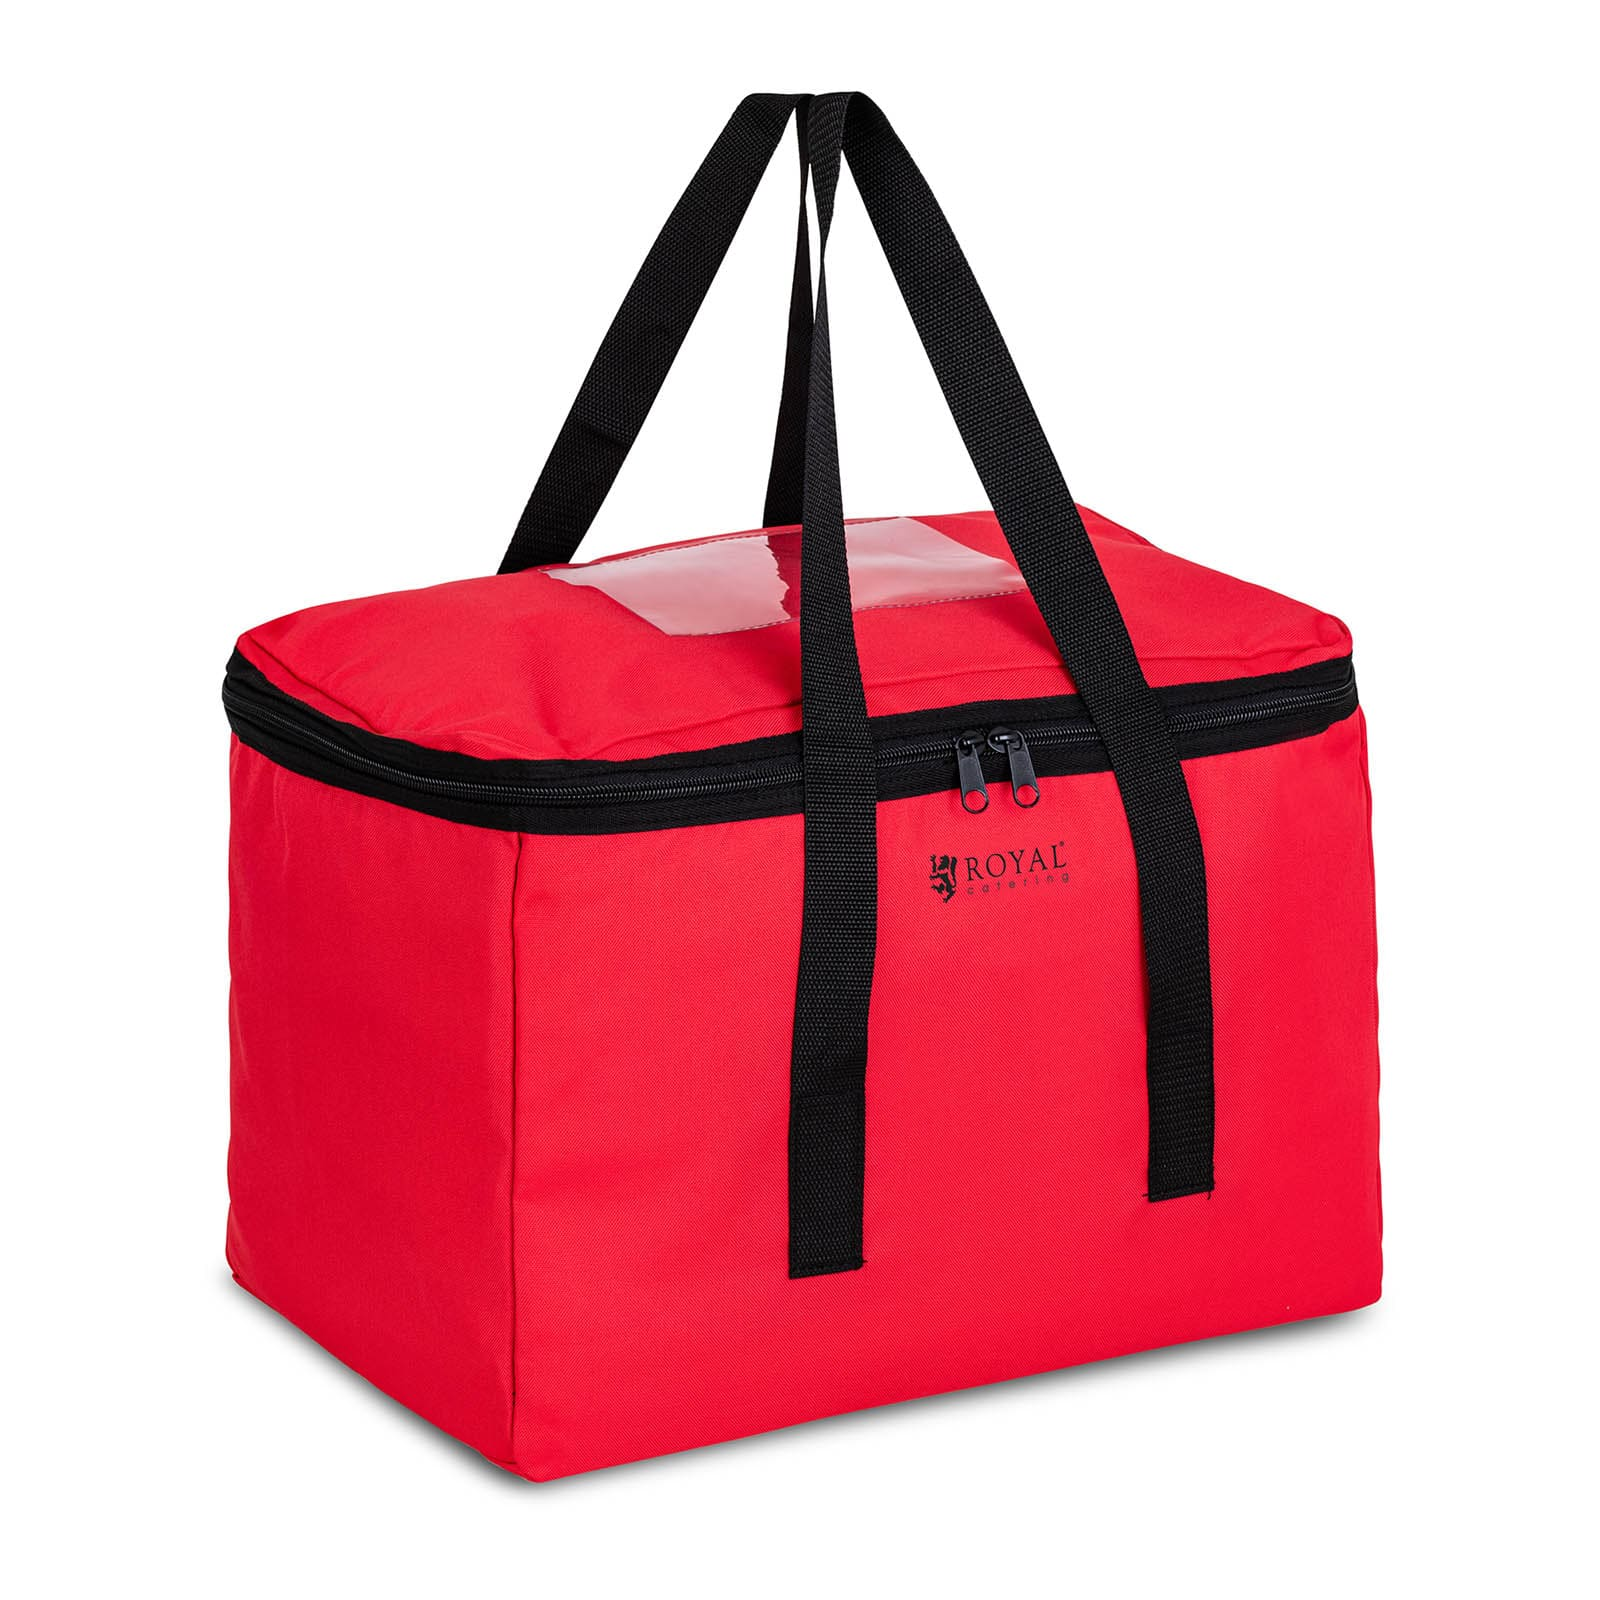 Food Delivery Boxes & Bags